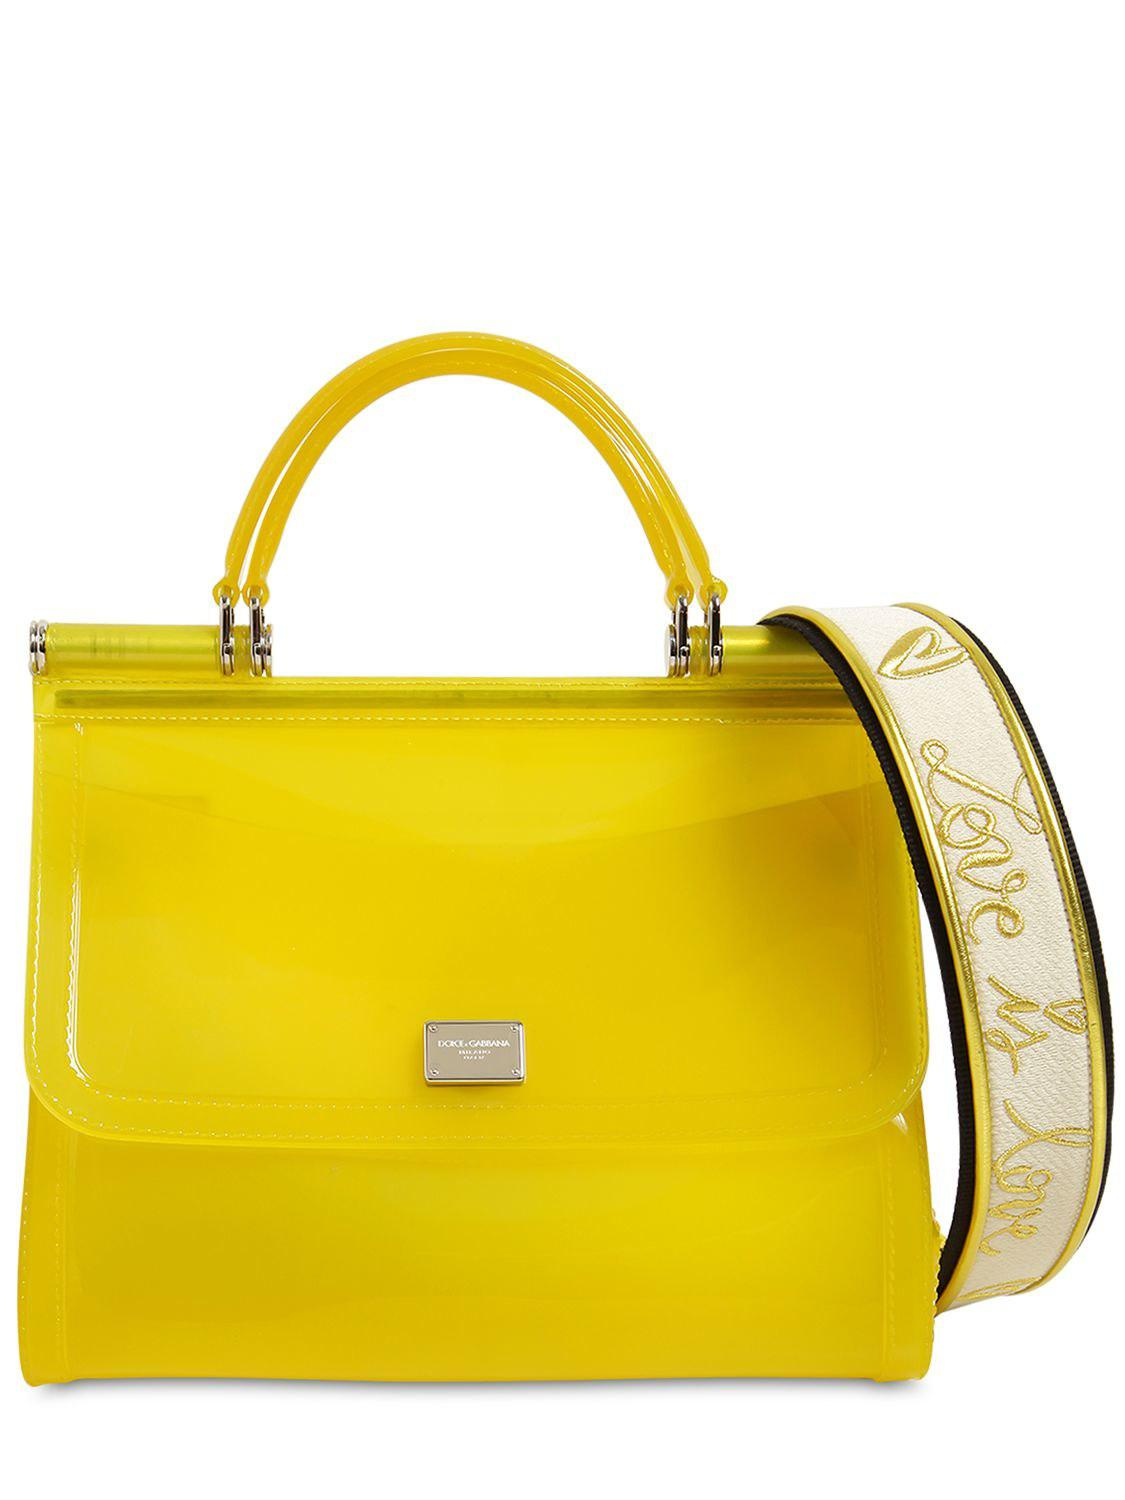 9ce010d649 Lyst - Dolce   Gabbana Sicily Faux Patent Leather Bag in Yellow